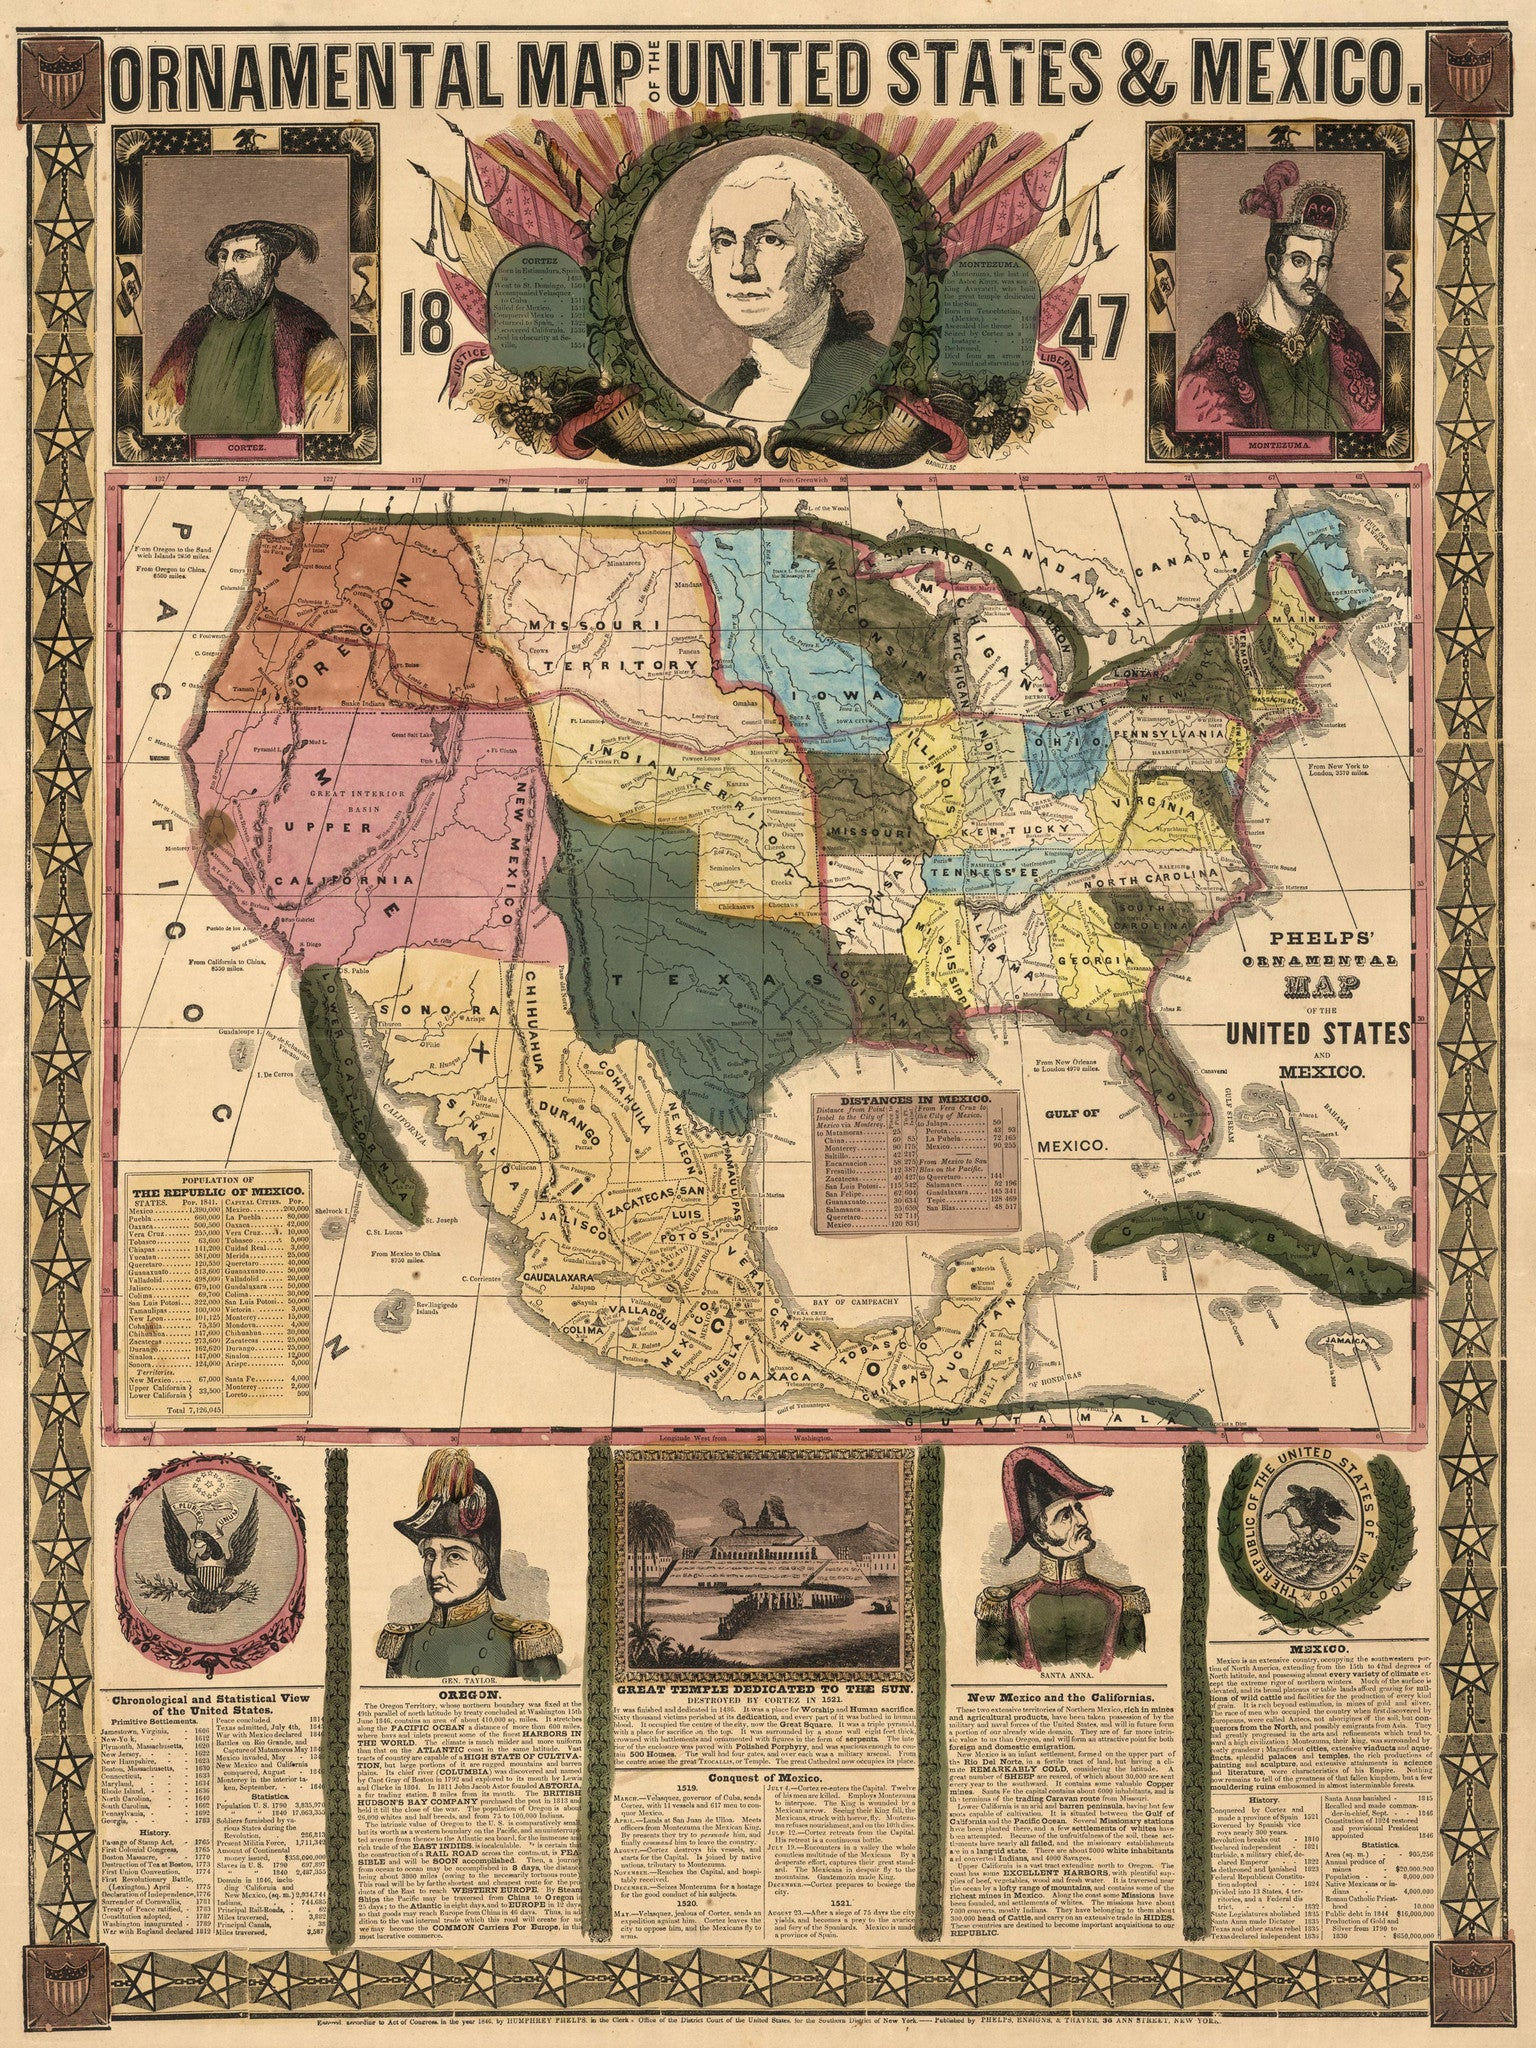 1847 Ornamental Map of the United States and Mexico